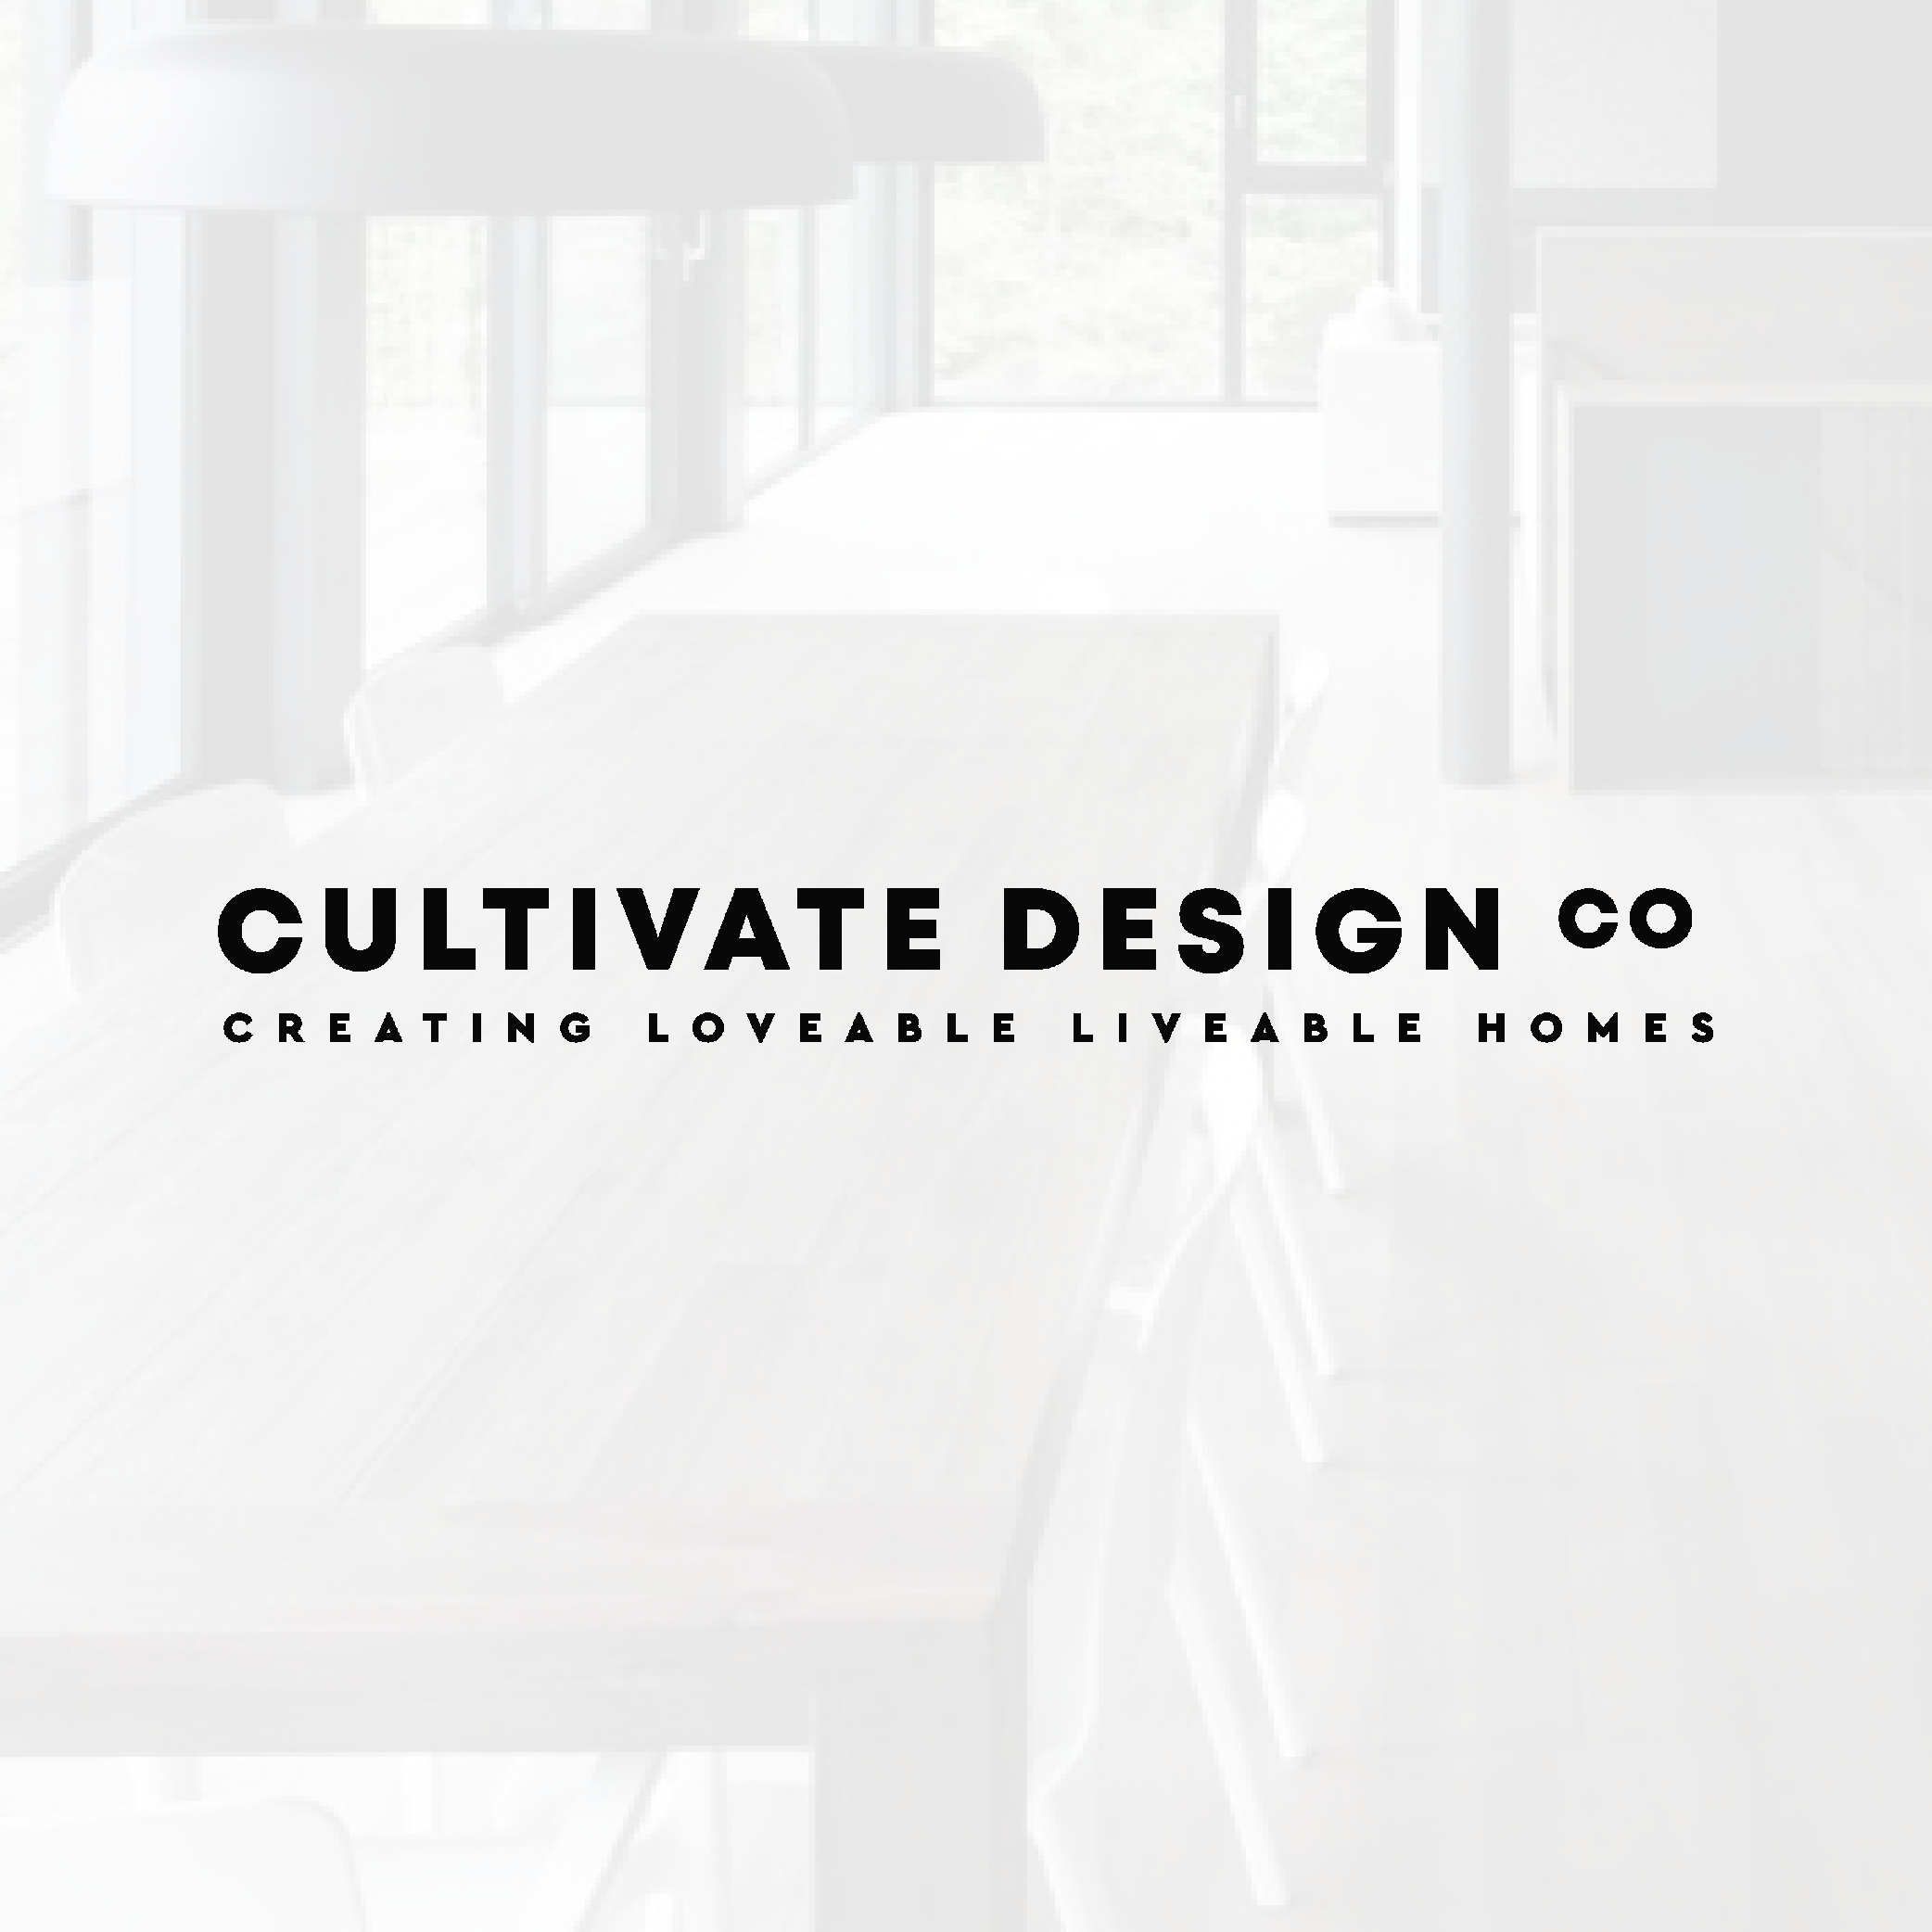 Cultivate Design Co